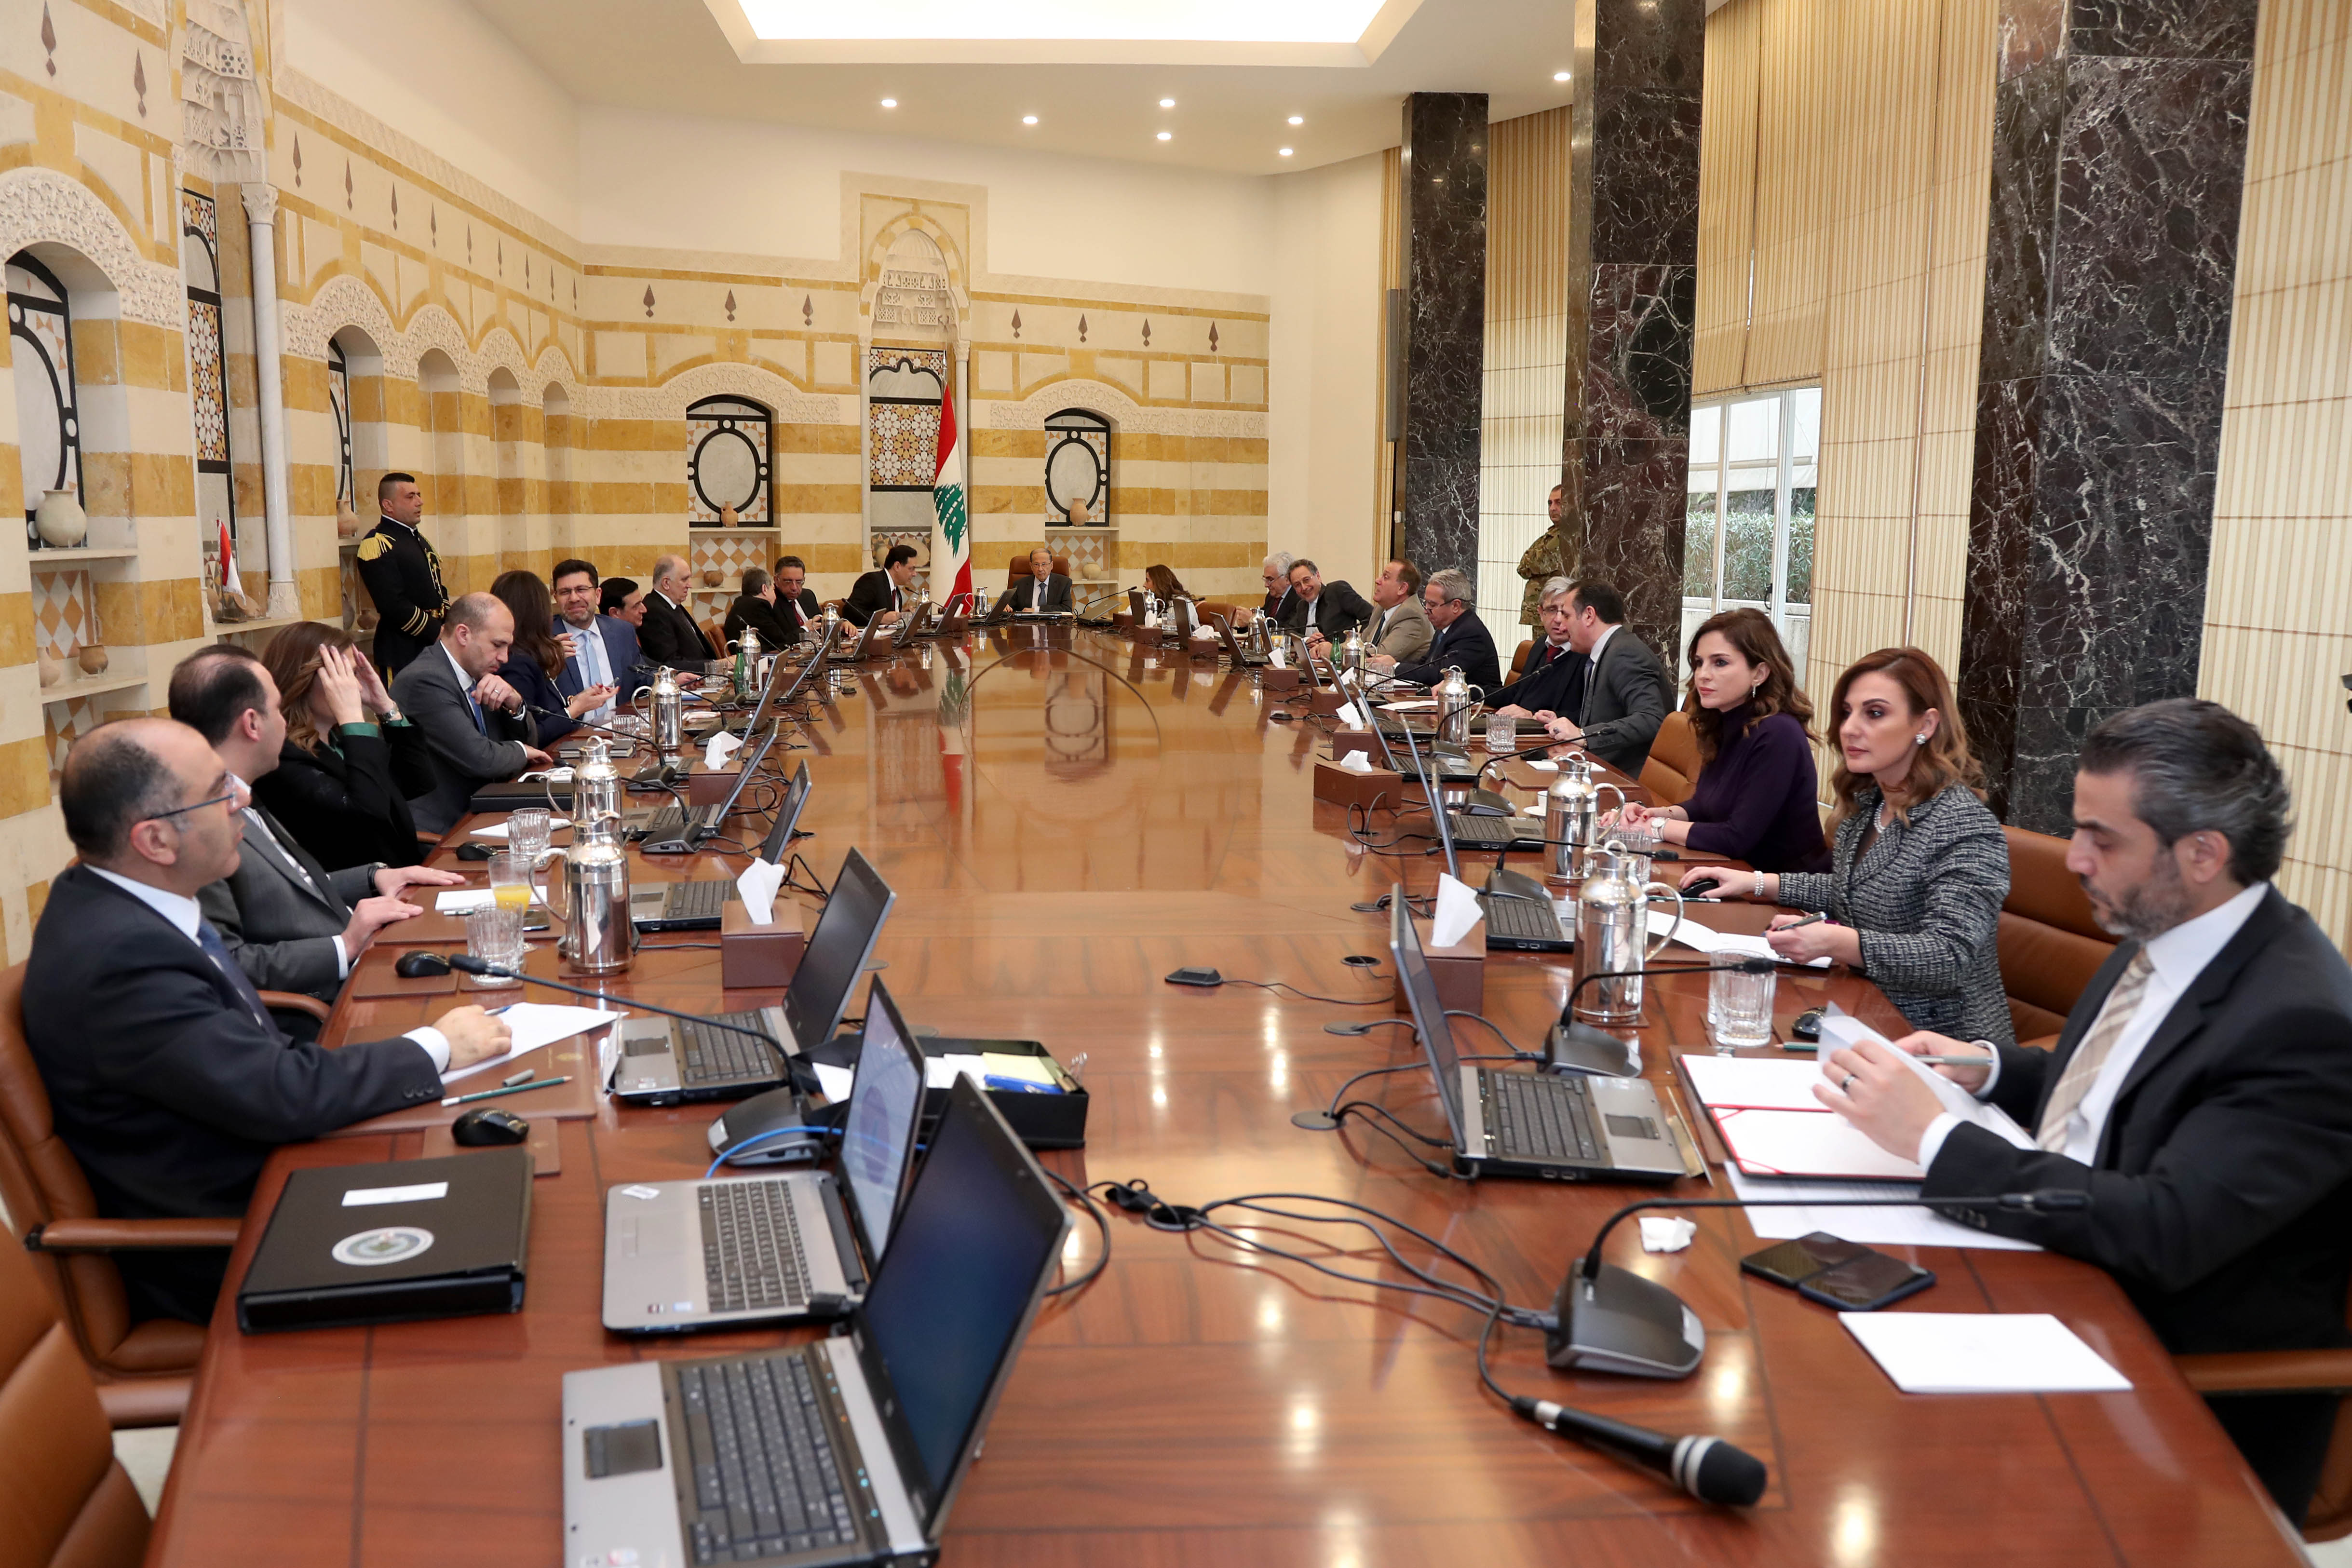 4 - Ministerial Council 1